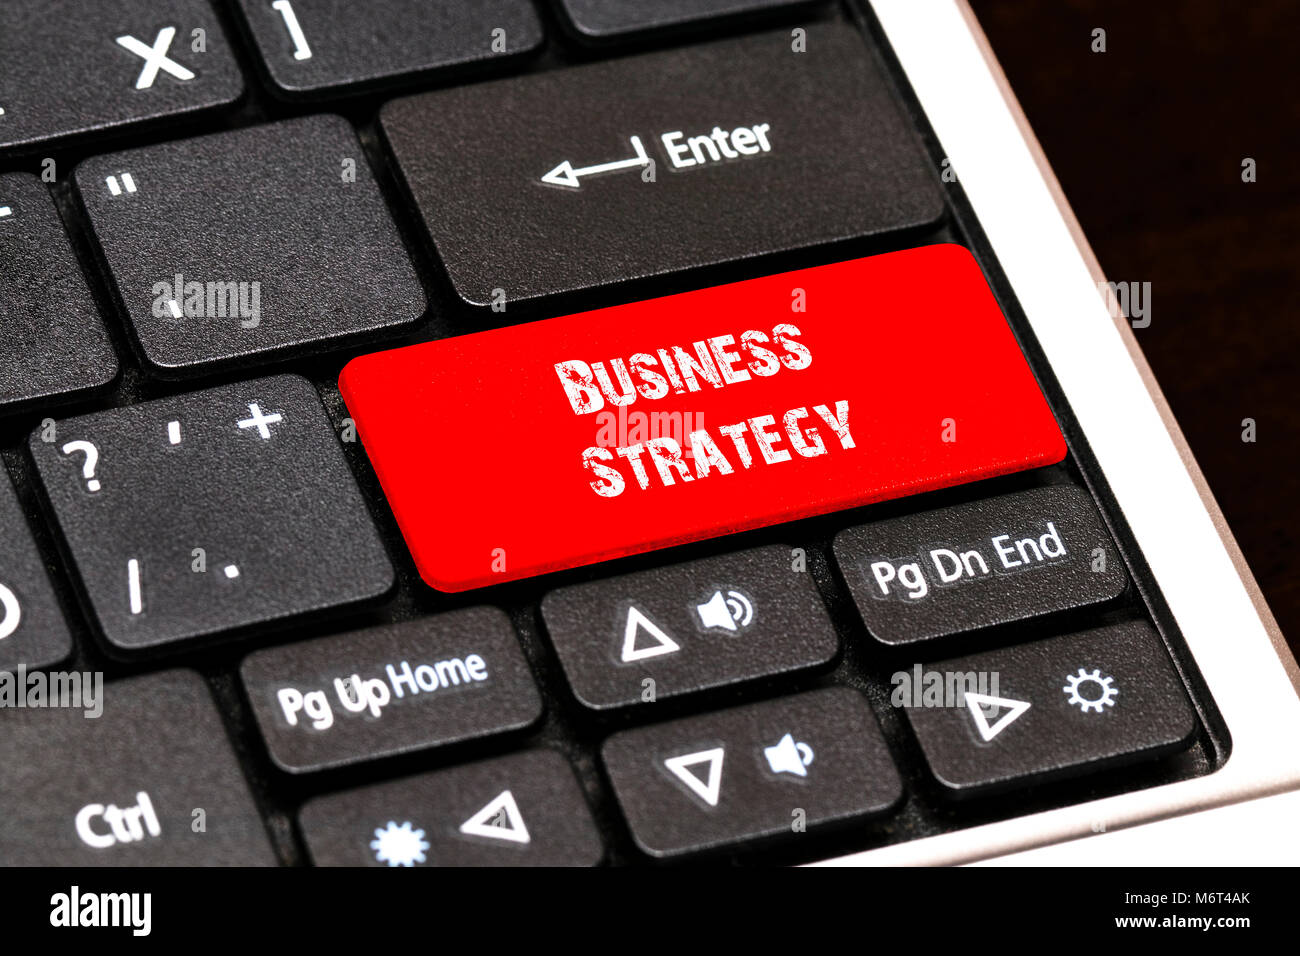 On the laptop keyboard the red button written Business Strategy. - Stock Image